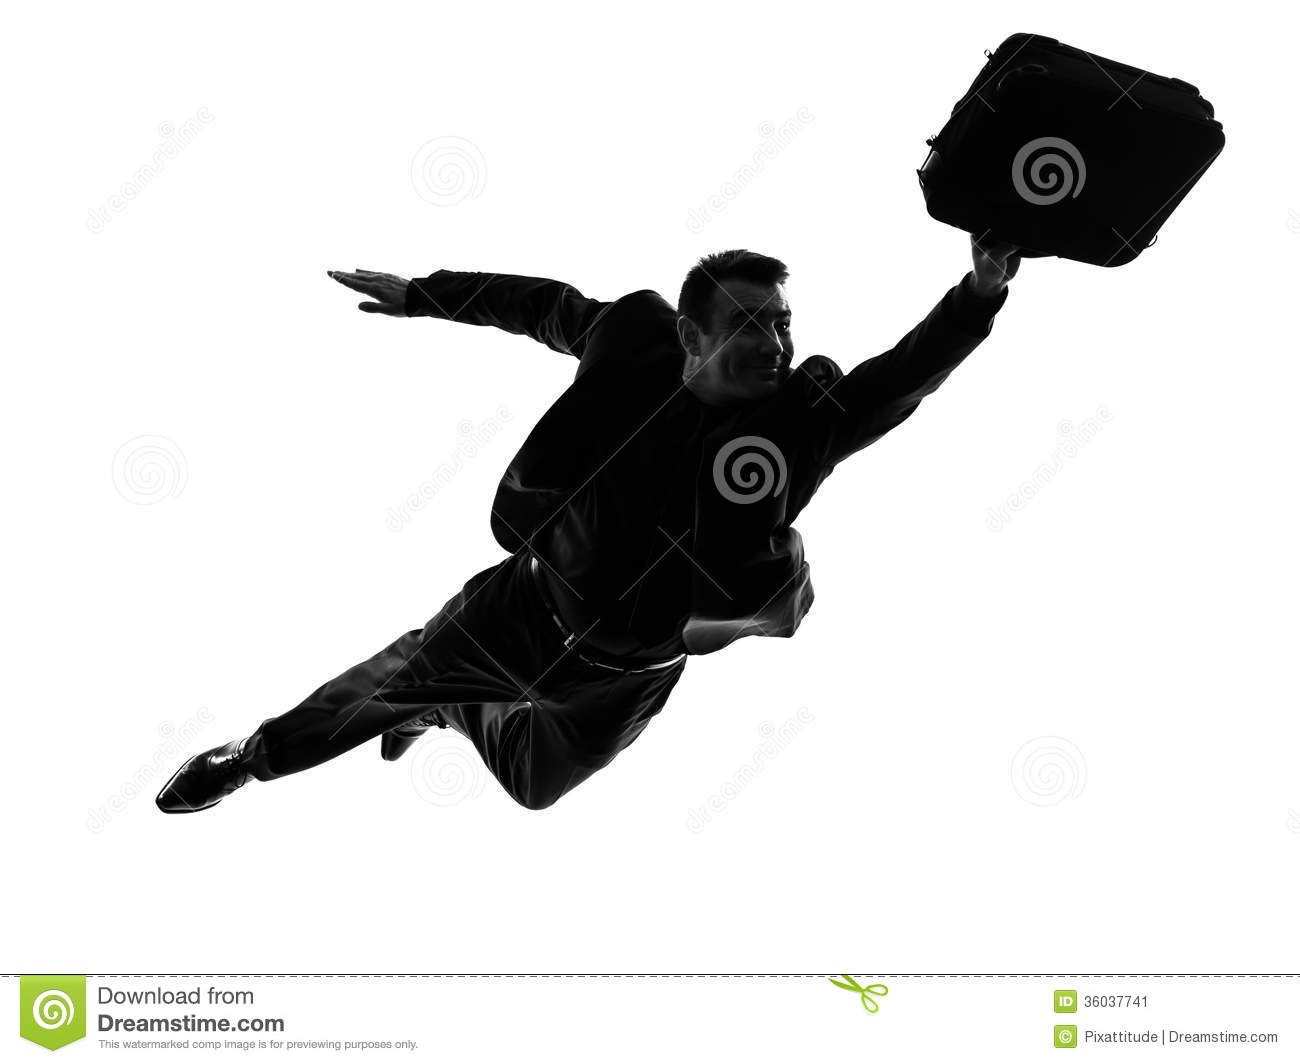 Business Super Man Flying Silhouette Stock Image - Image: 36037741 Superhero Flying Vector